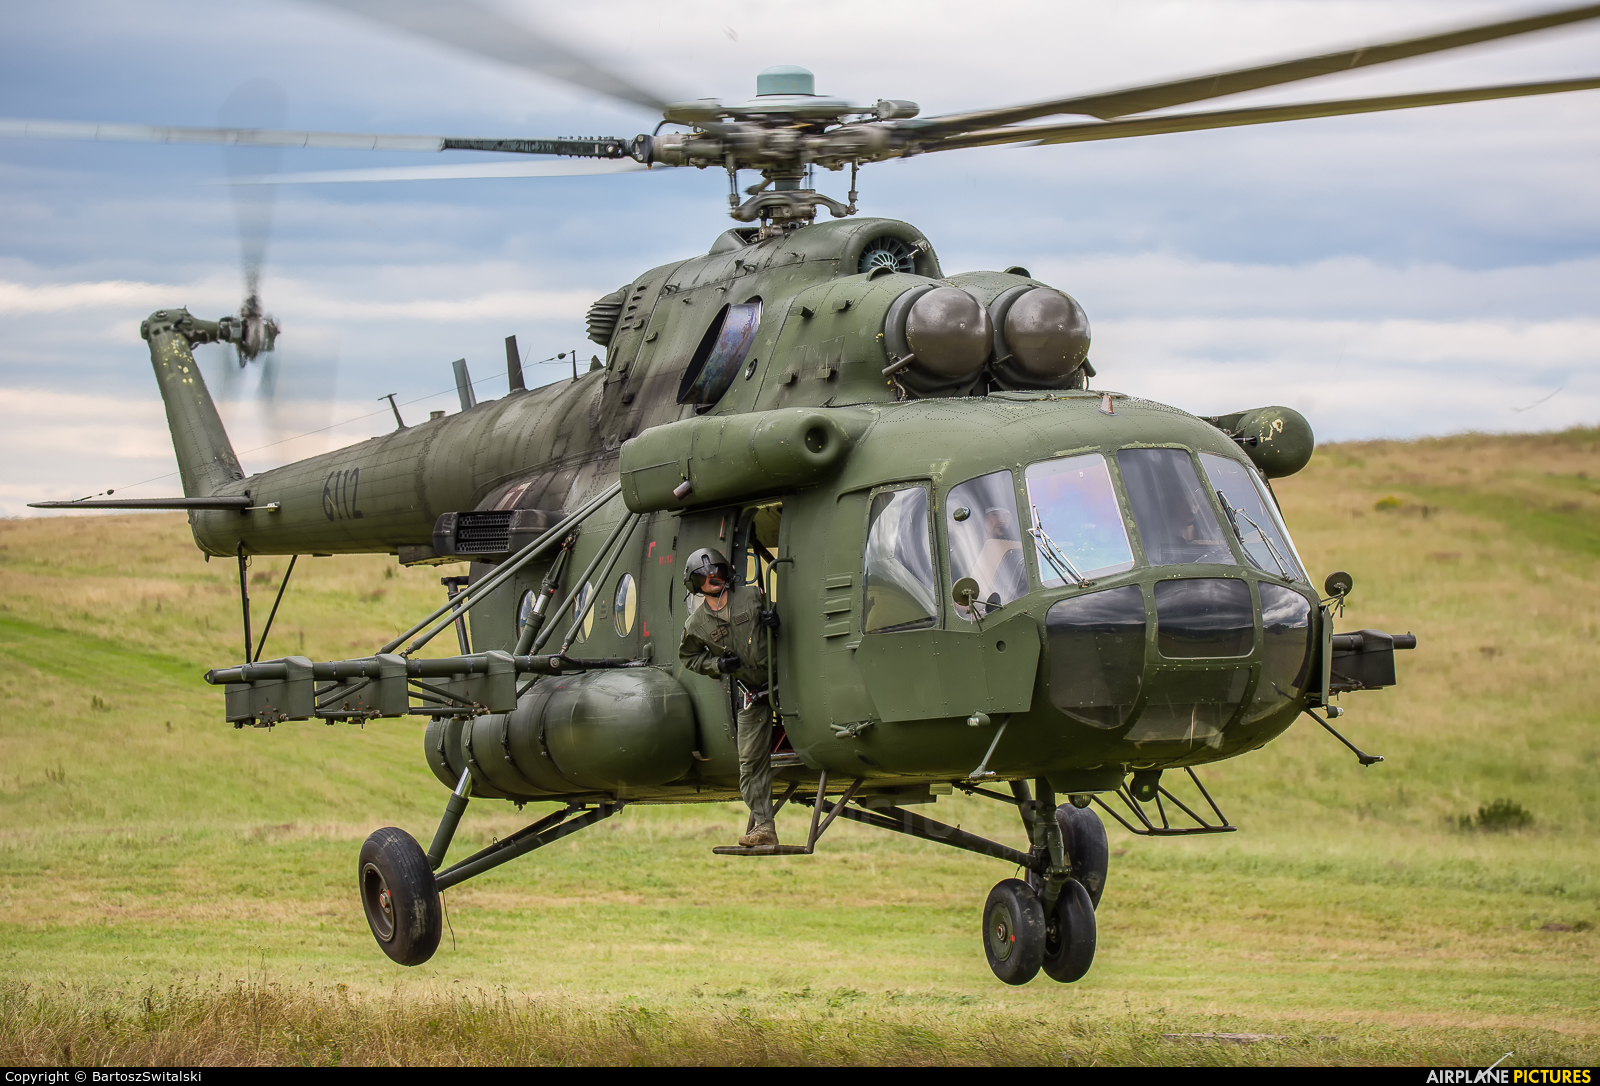 Poland- Air Force: Special Forces 6112 aircraft at Undisclosed location